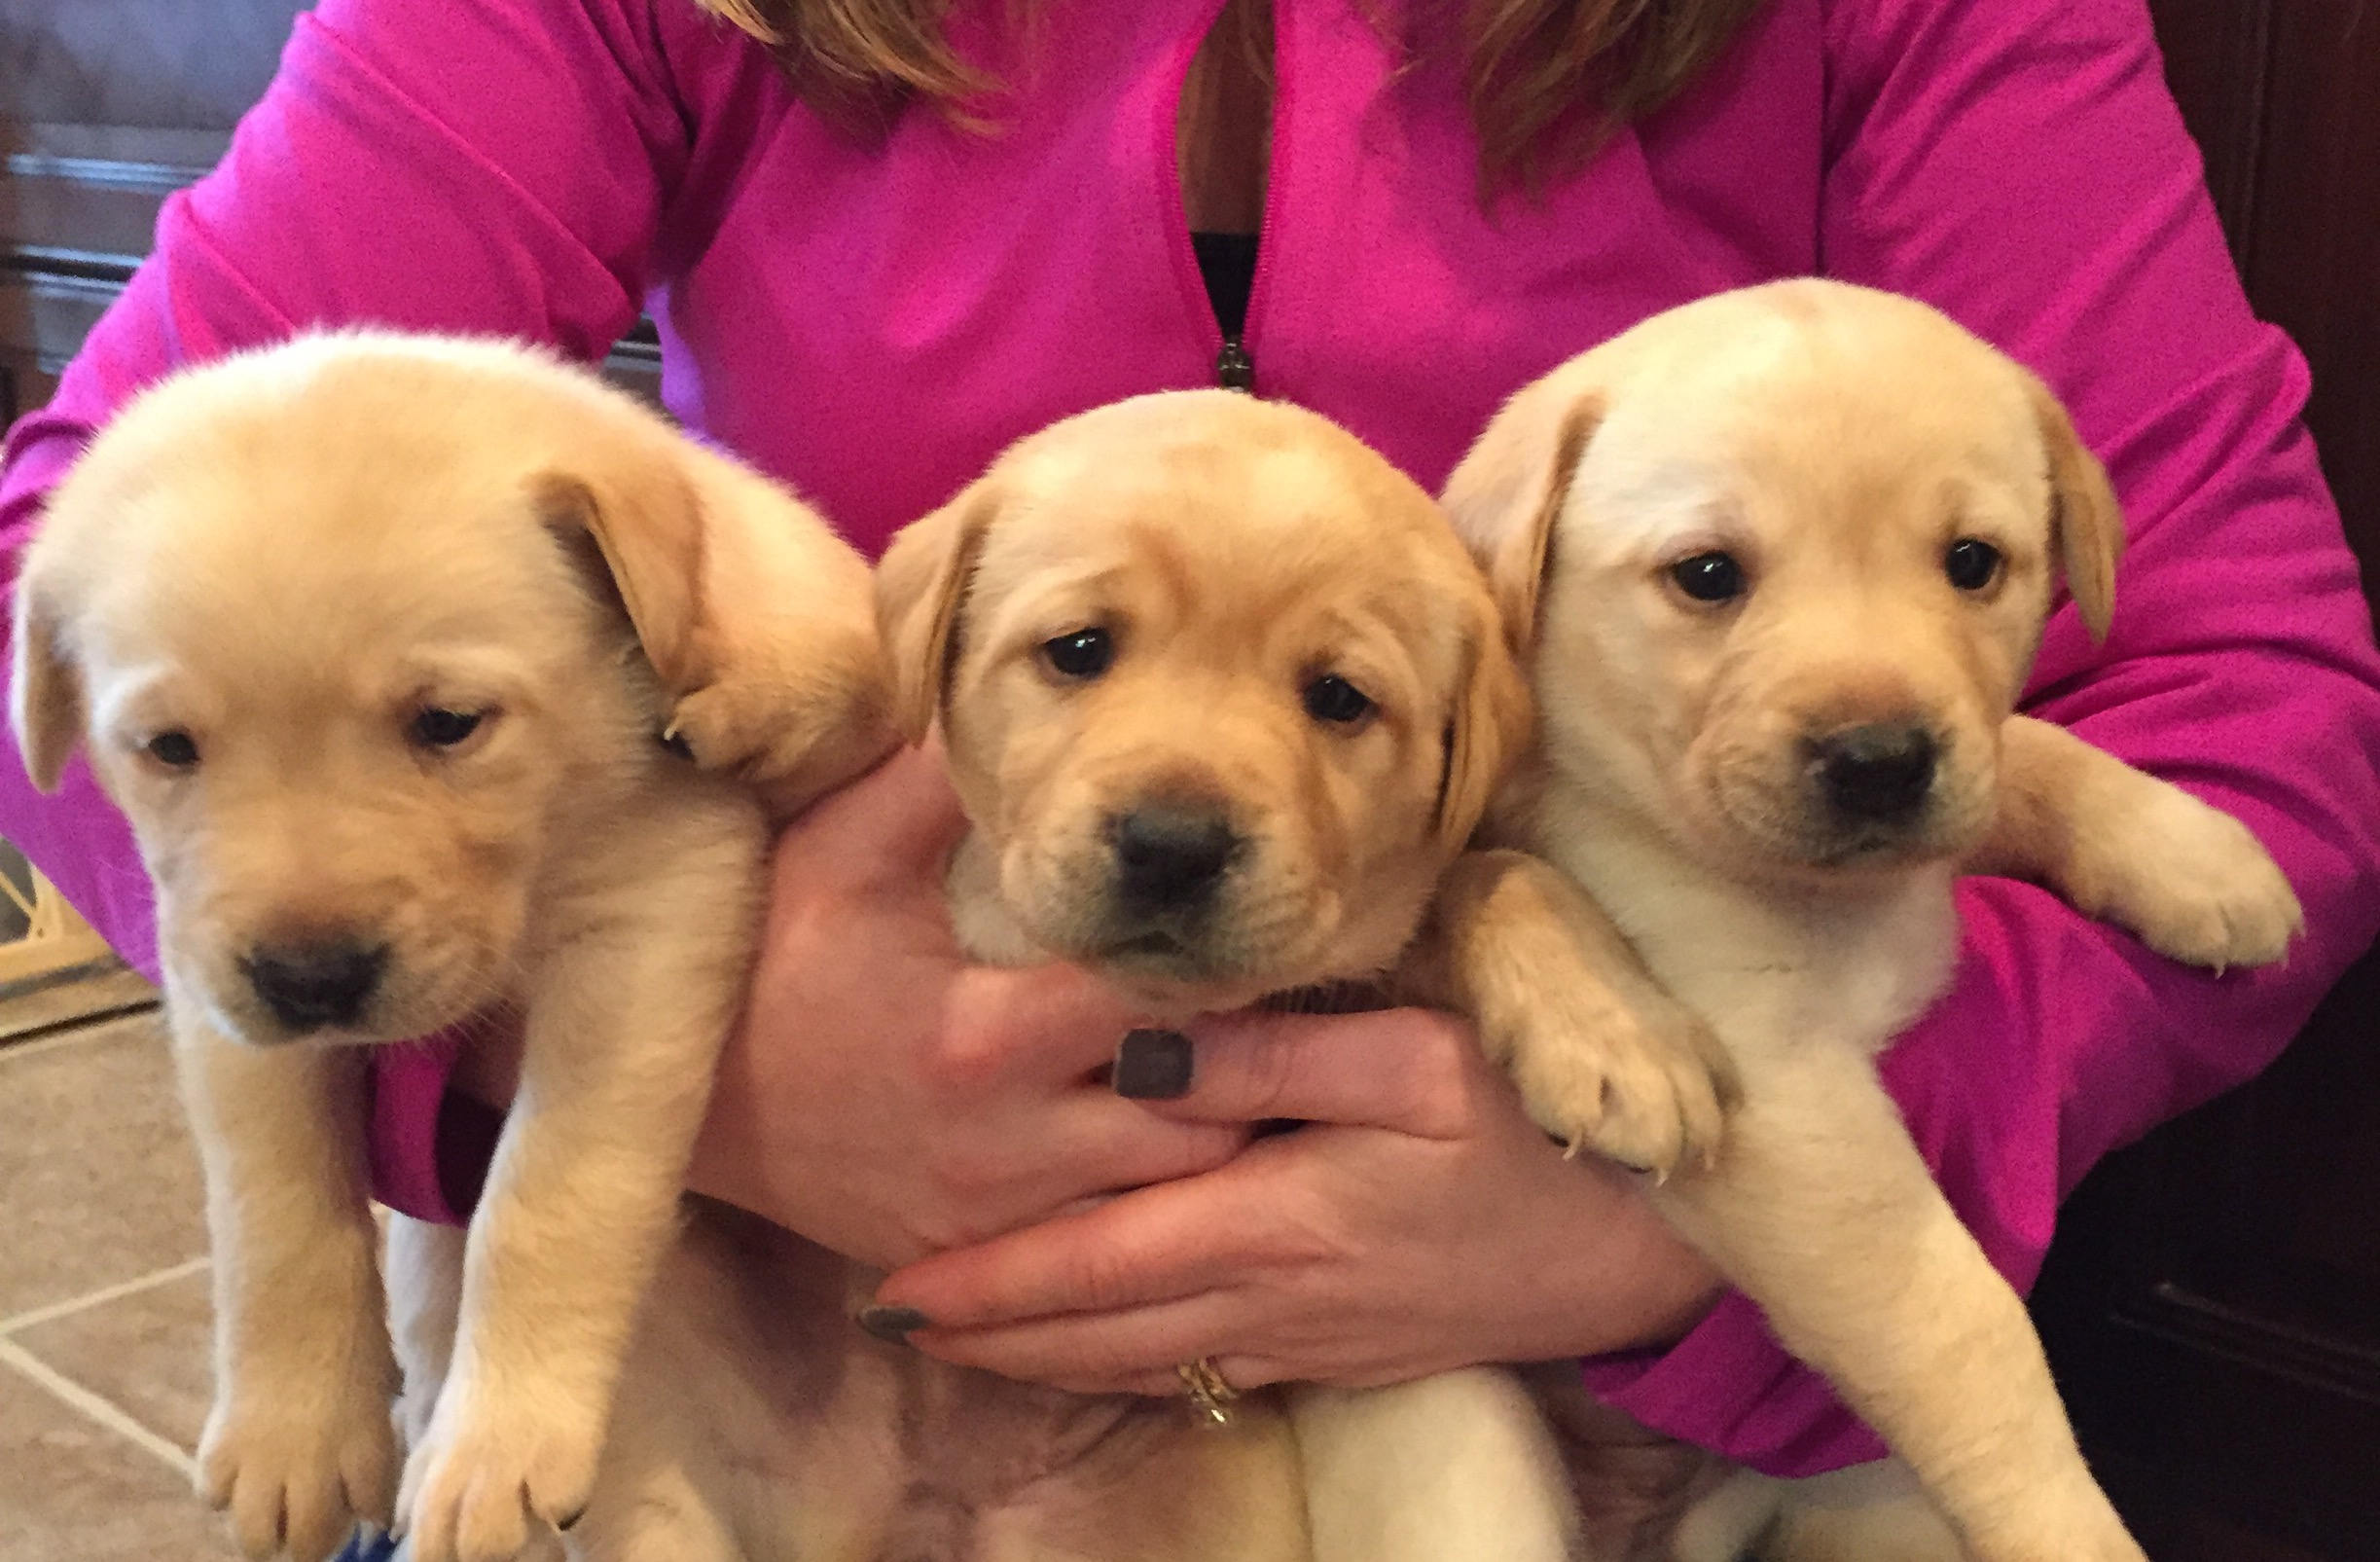 Yellow Lab Dogs For Sale Akc Yellow Lab Puppies For Sale Vernon National Shooting Preserve